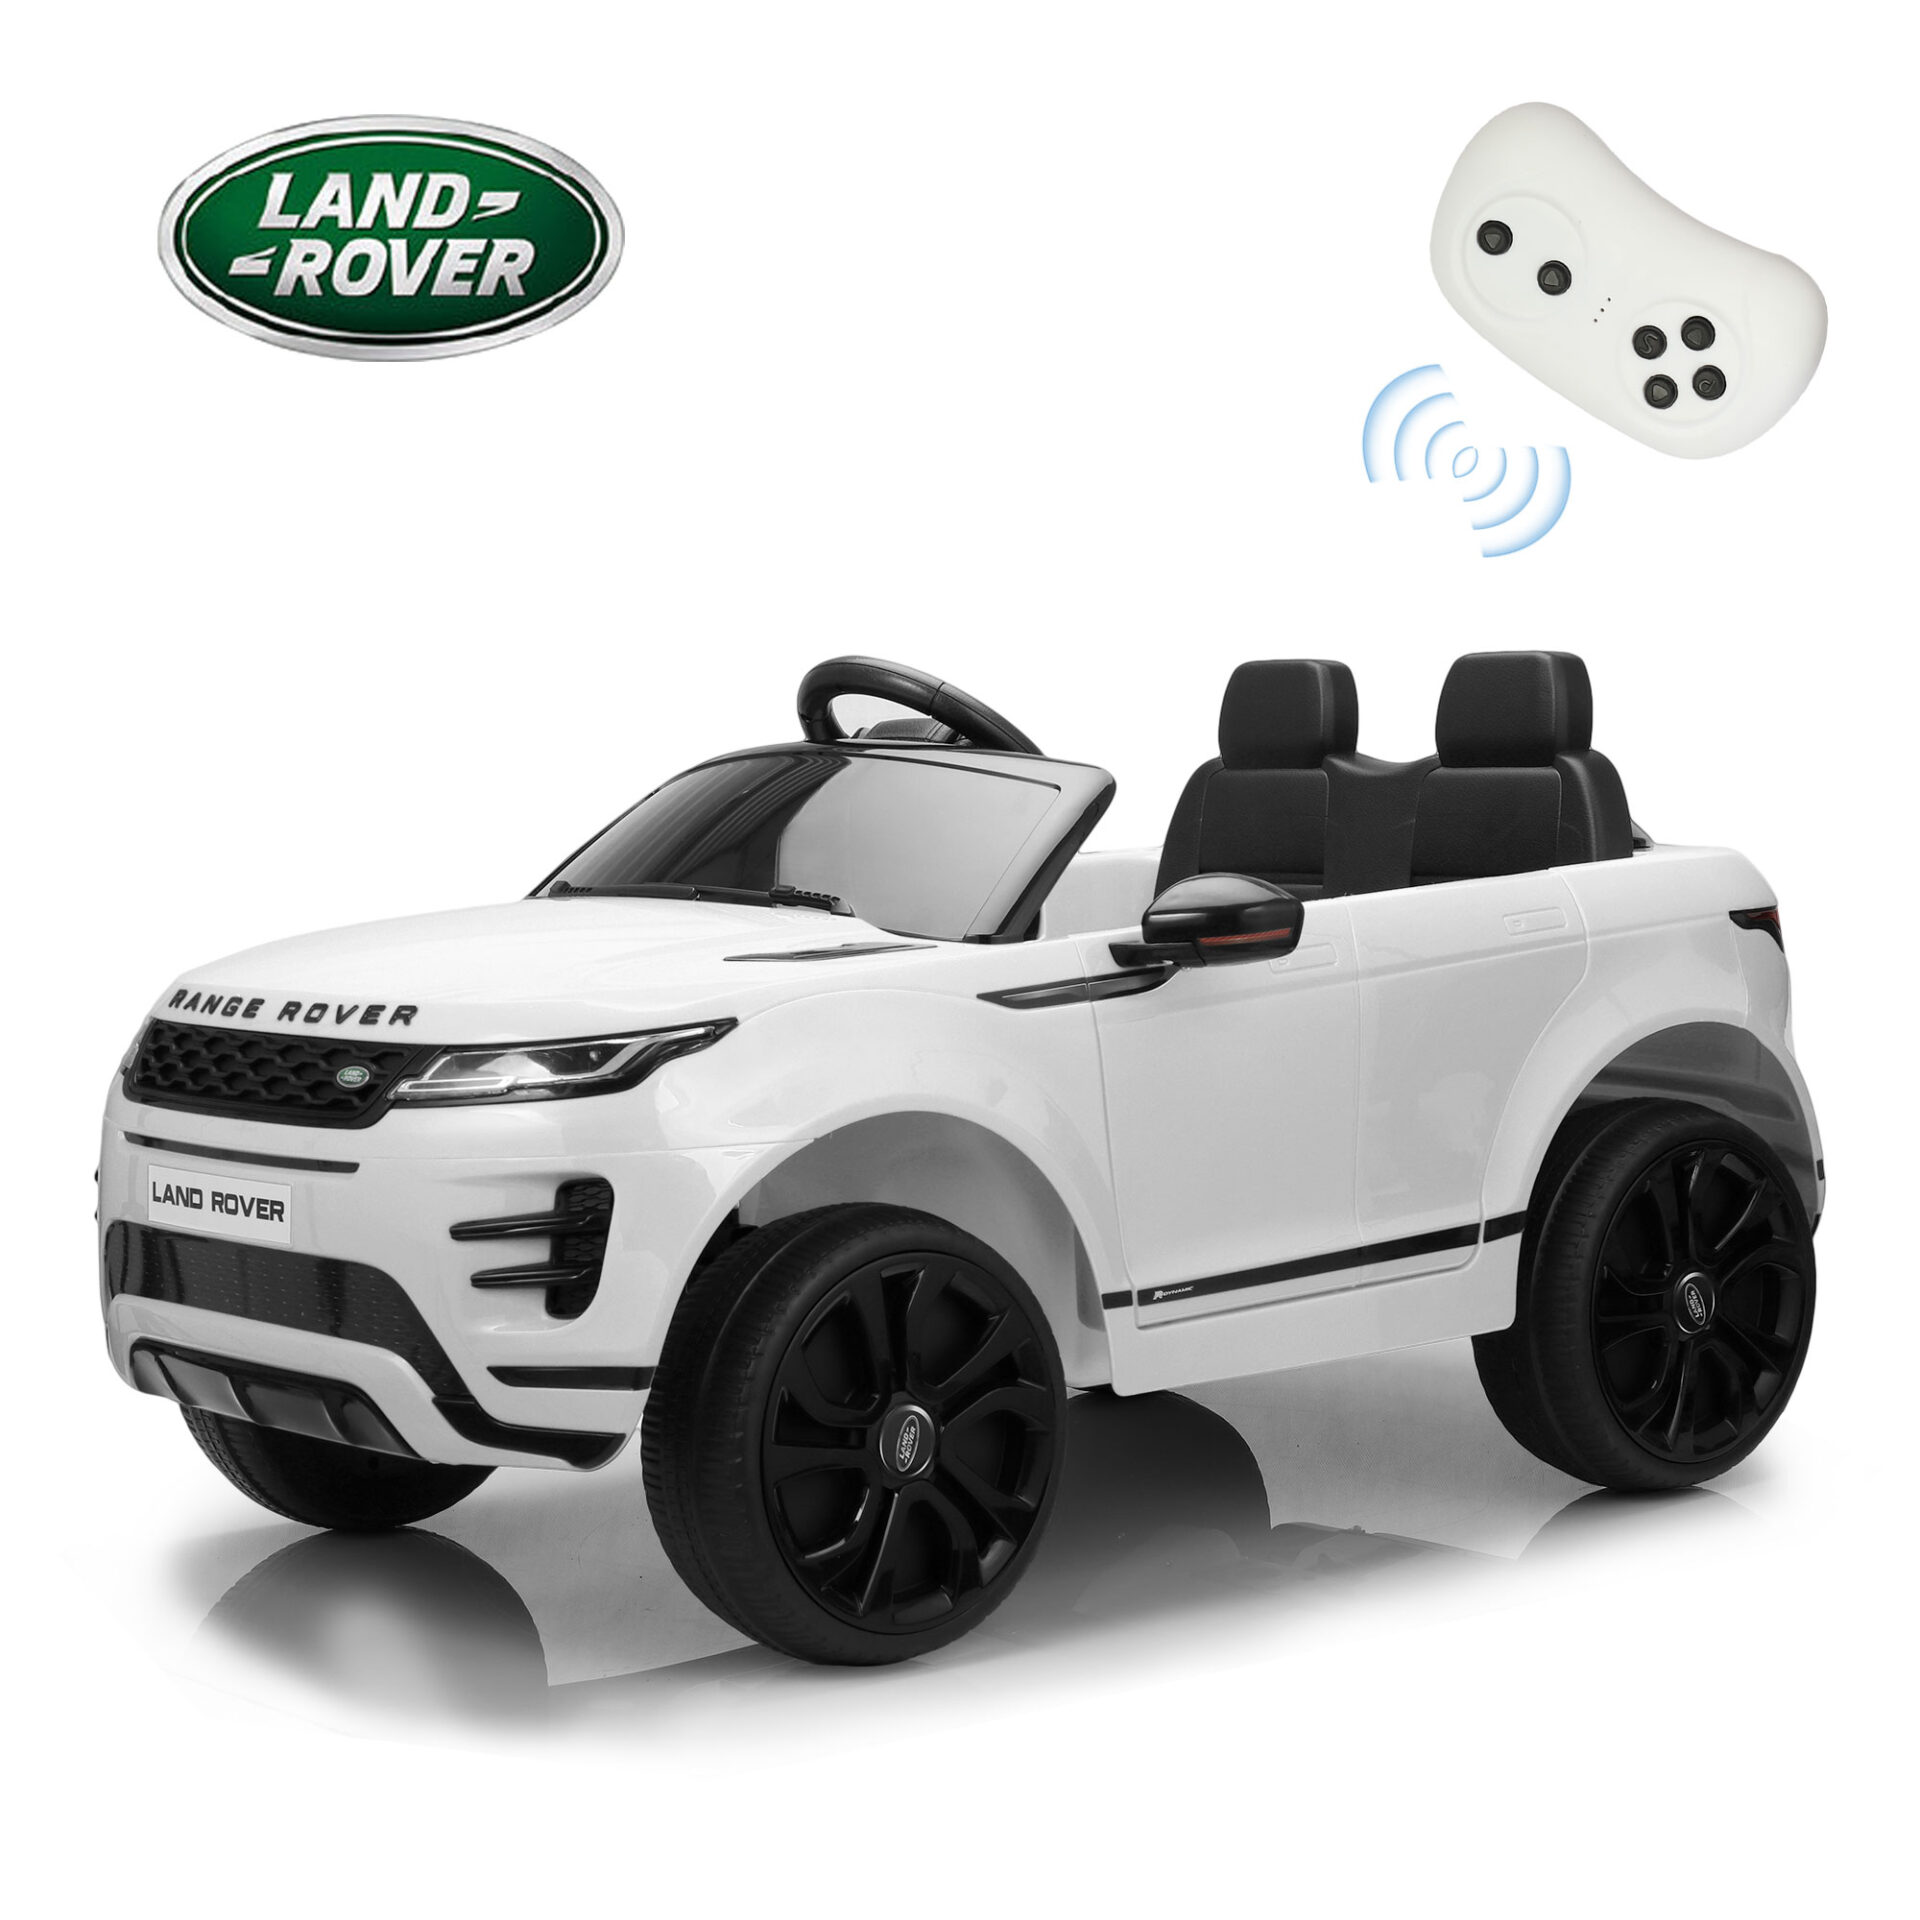 12V Land Rover Kids Power Wheels Ride On Toys With Remote, White TH17T0620 zt60